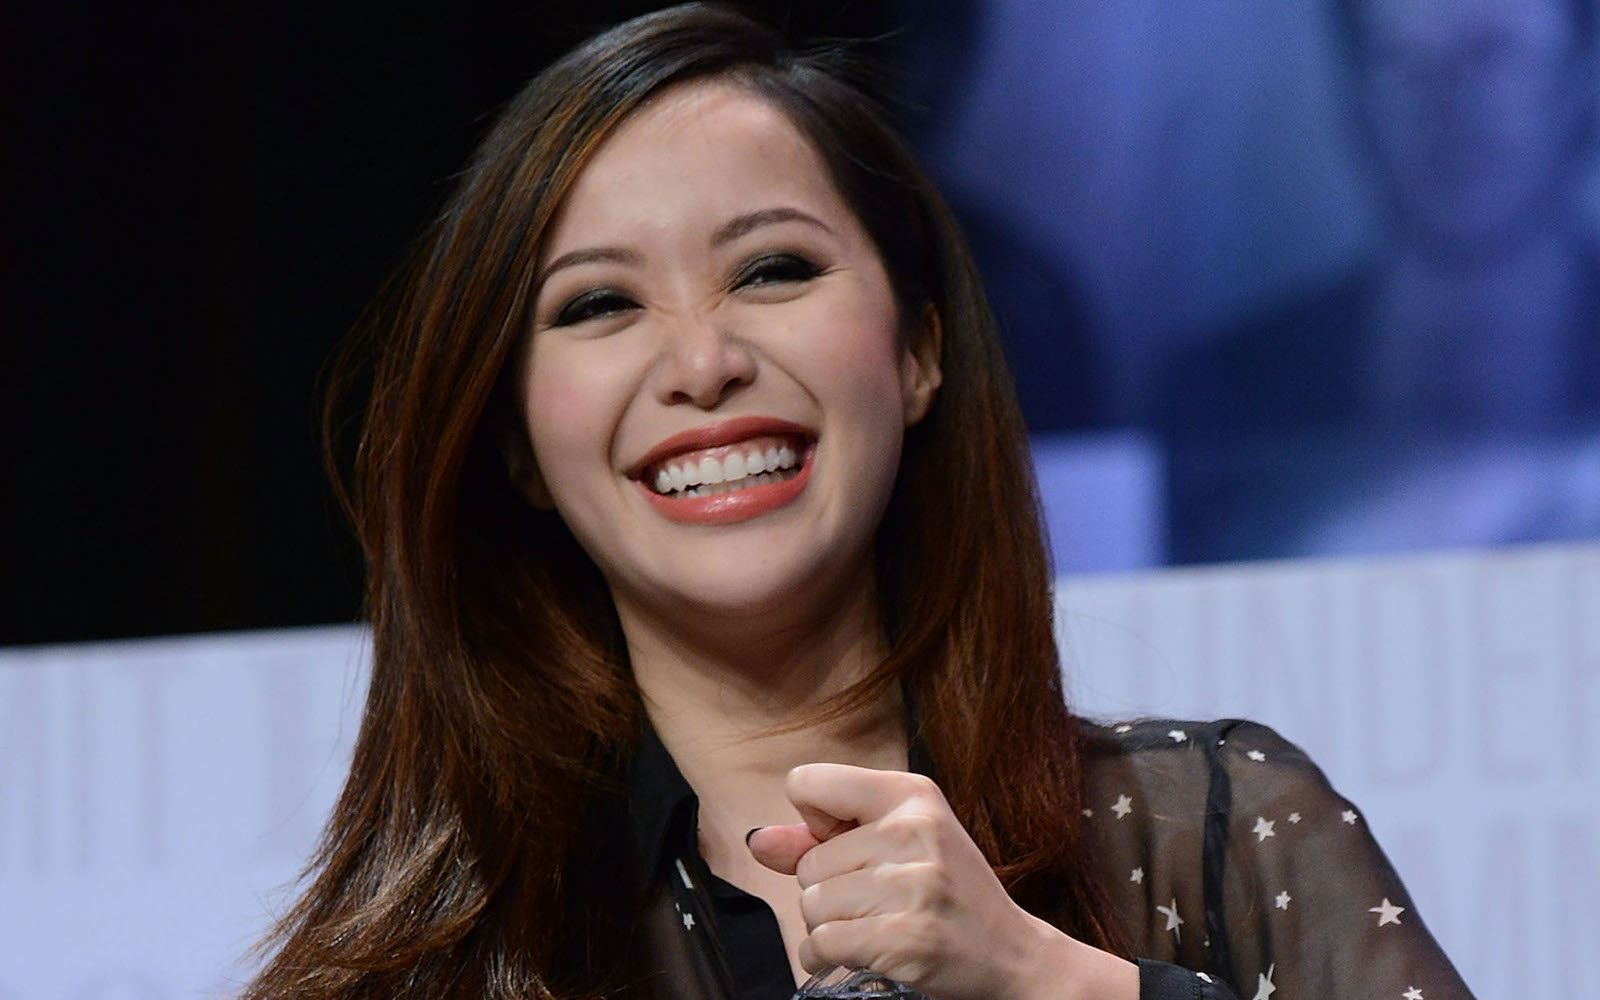 Michelle Phan goes off the grid.